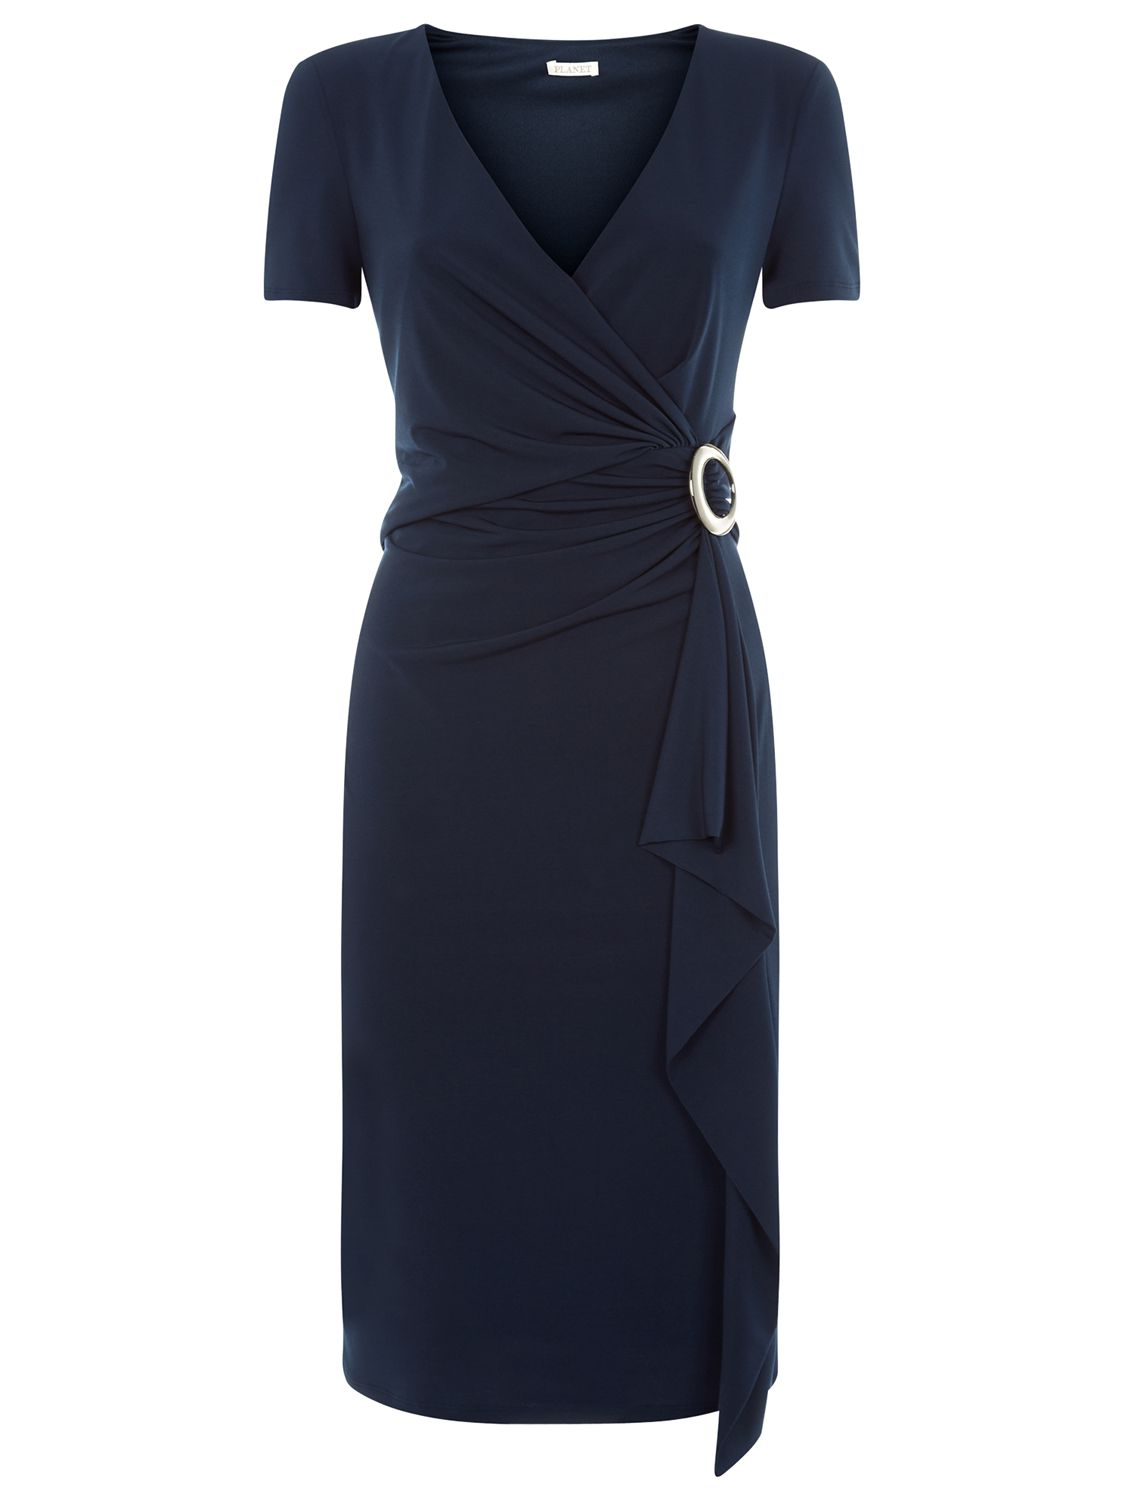 planet front frill ity dress navy, planet, front, frill, ity, dress, navy, 14|10|8|12|18|20|16, women, plus size, womens dresses, 1887177